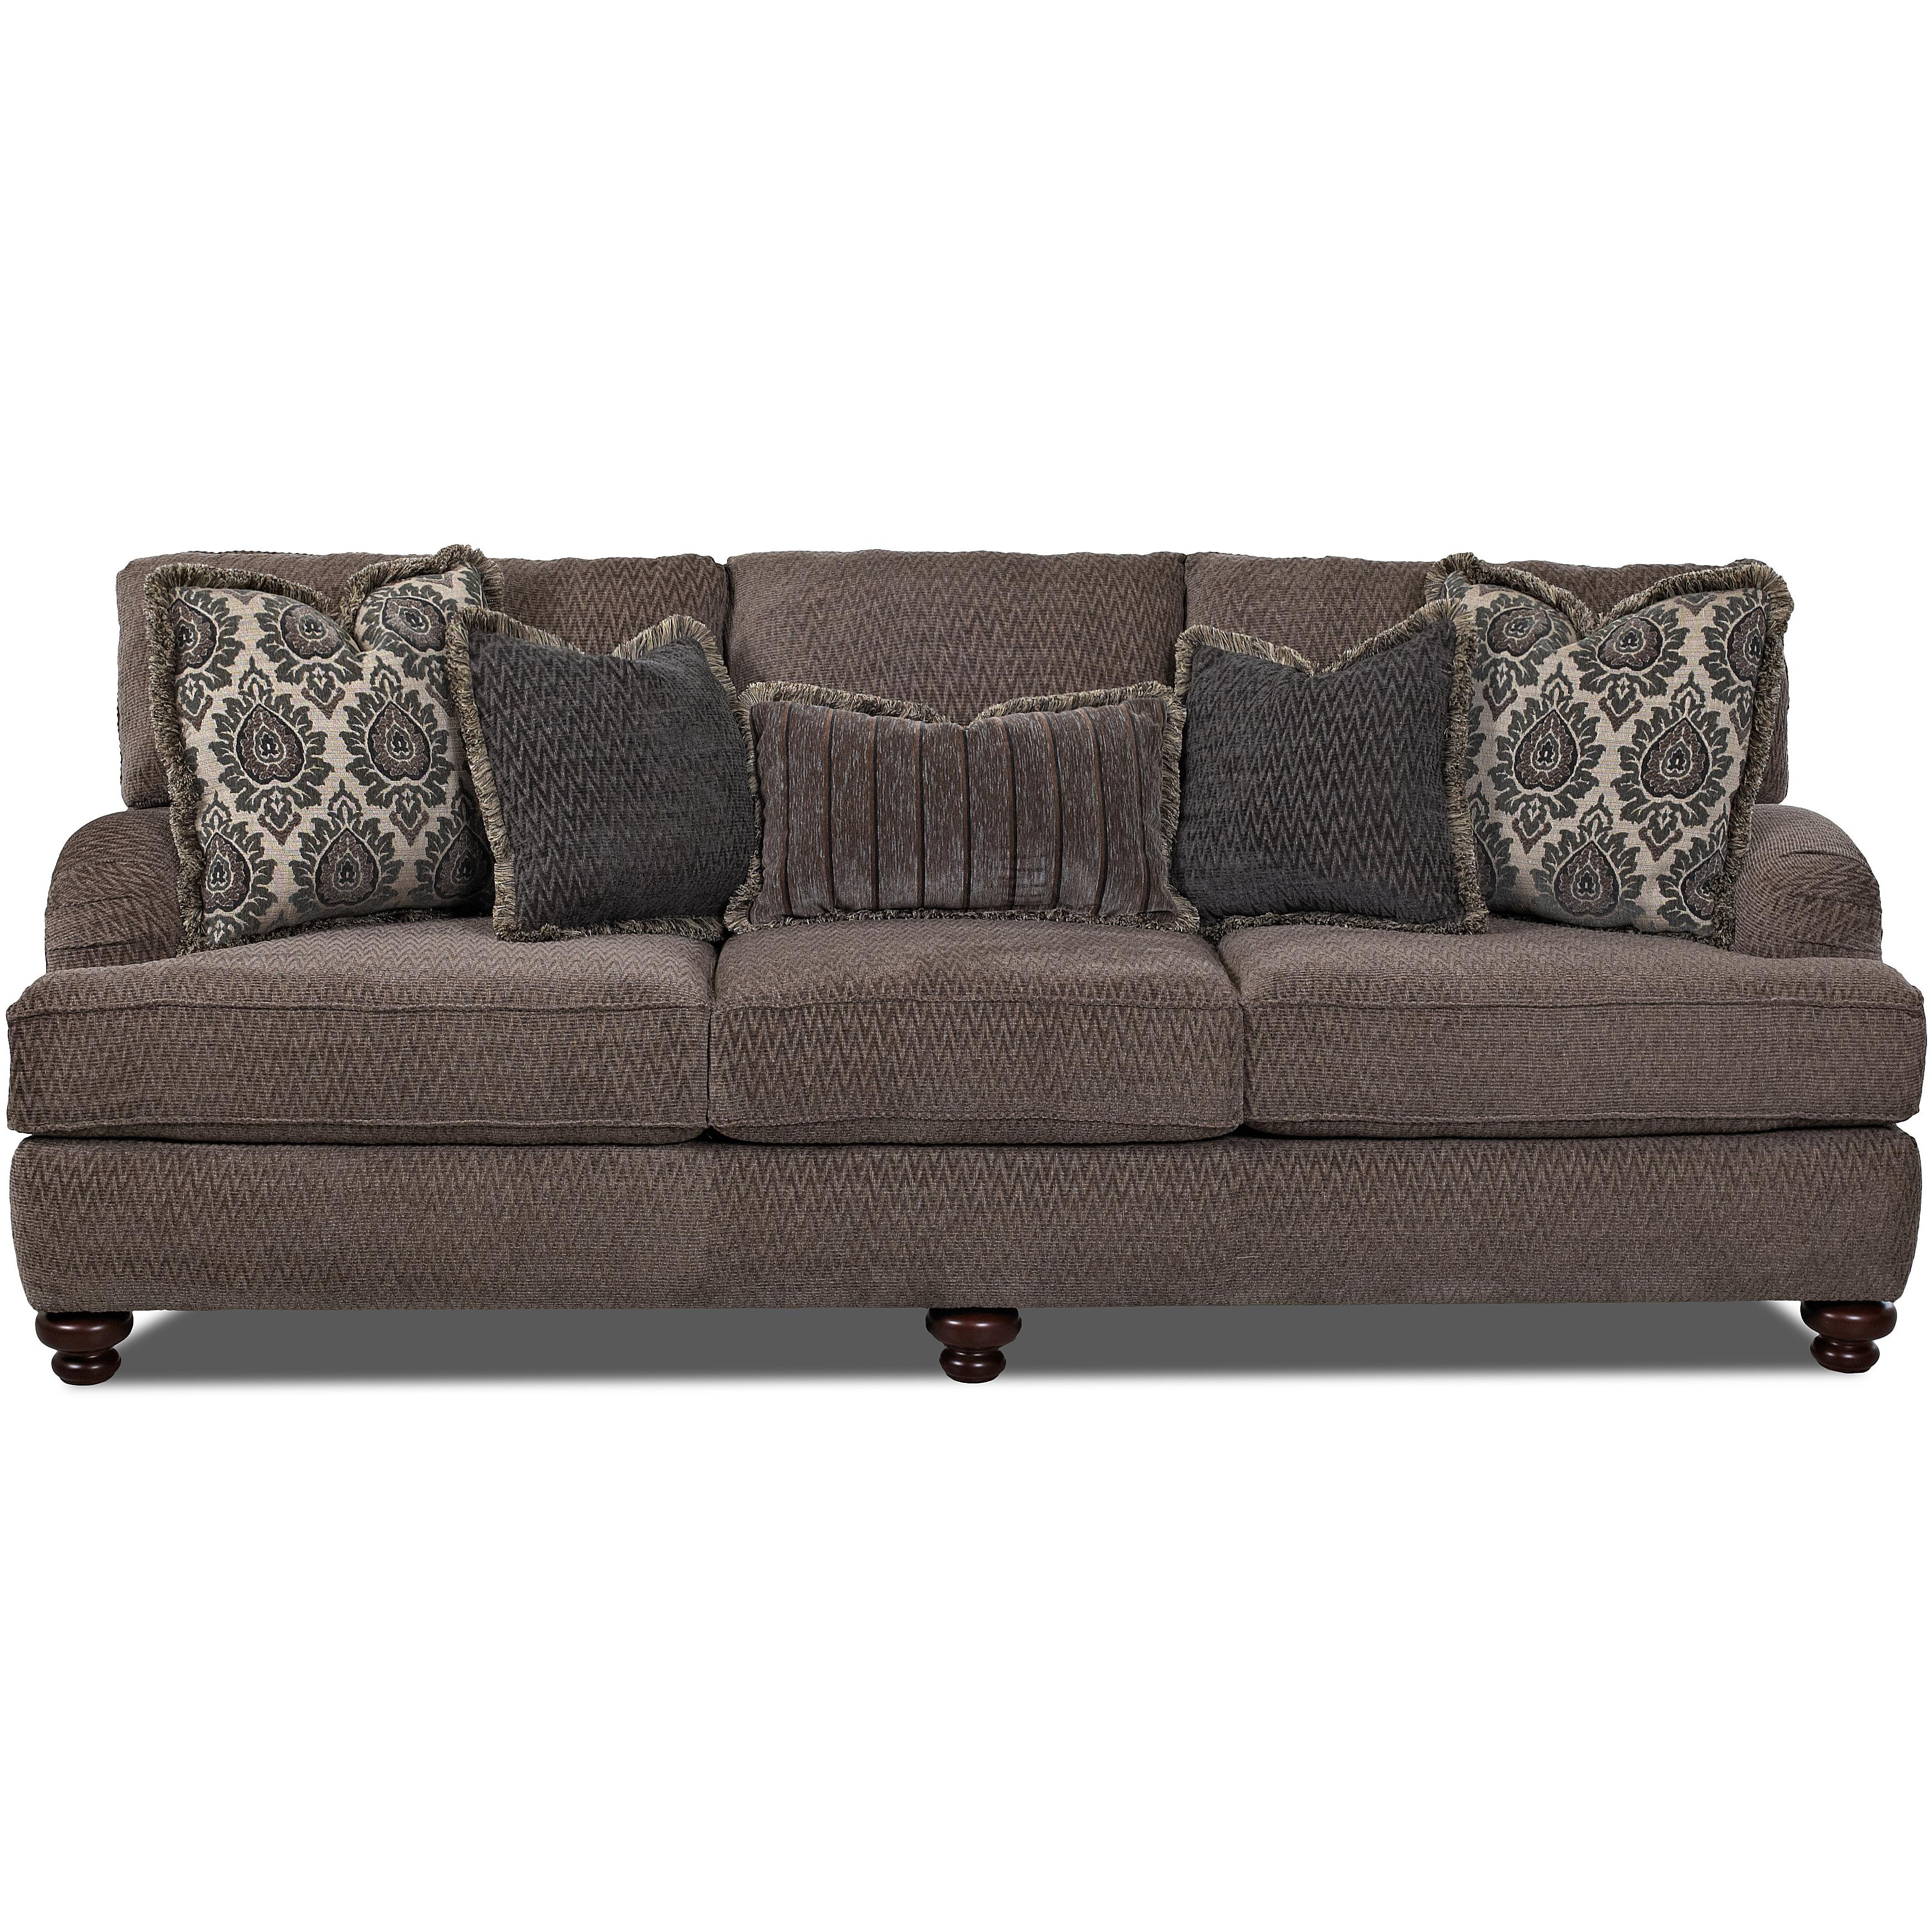 Traditional Sofa With Turned Feet By Klaussner Wolf And